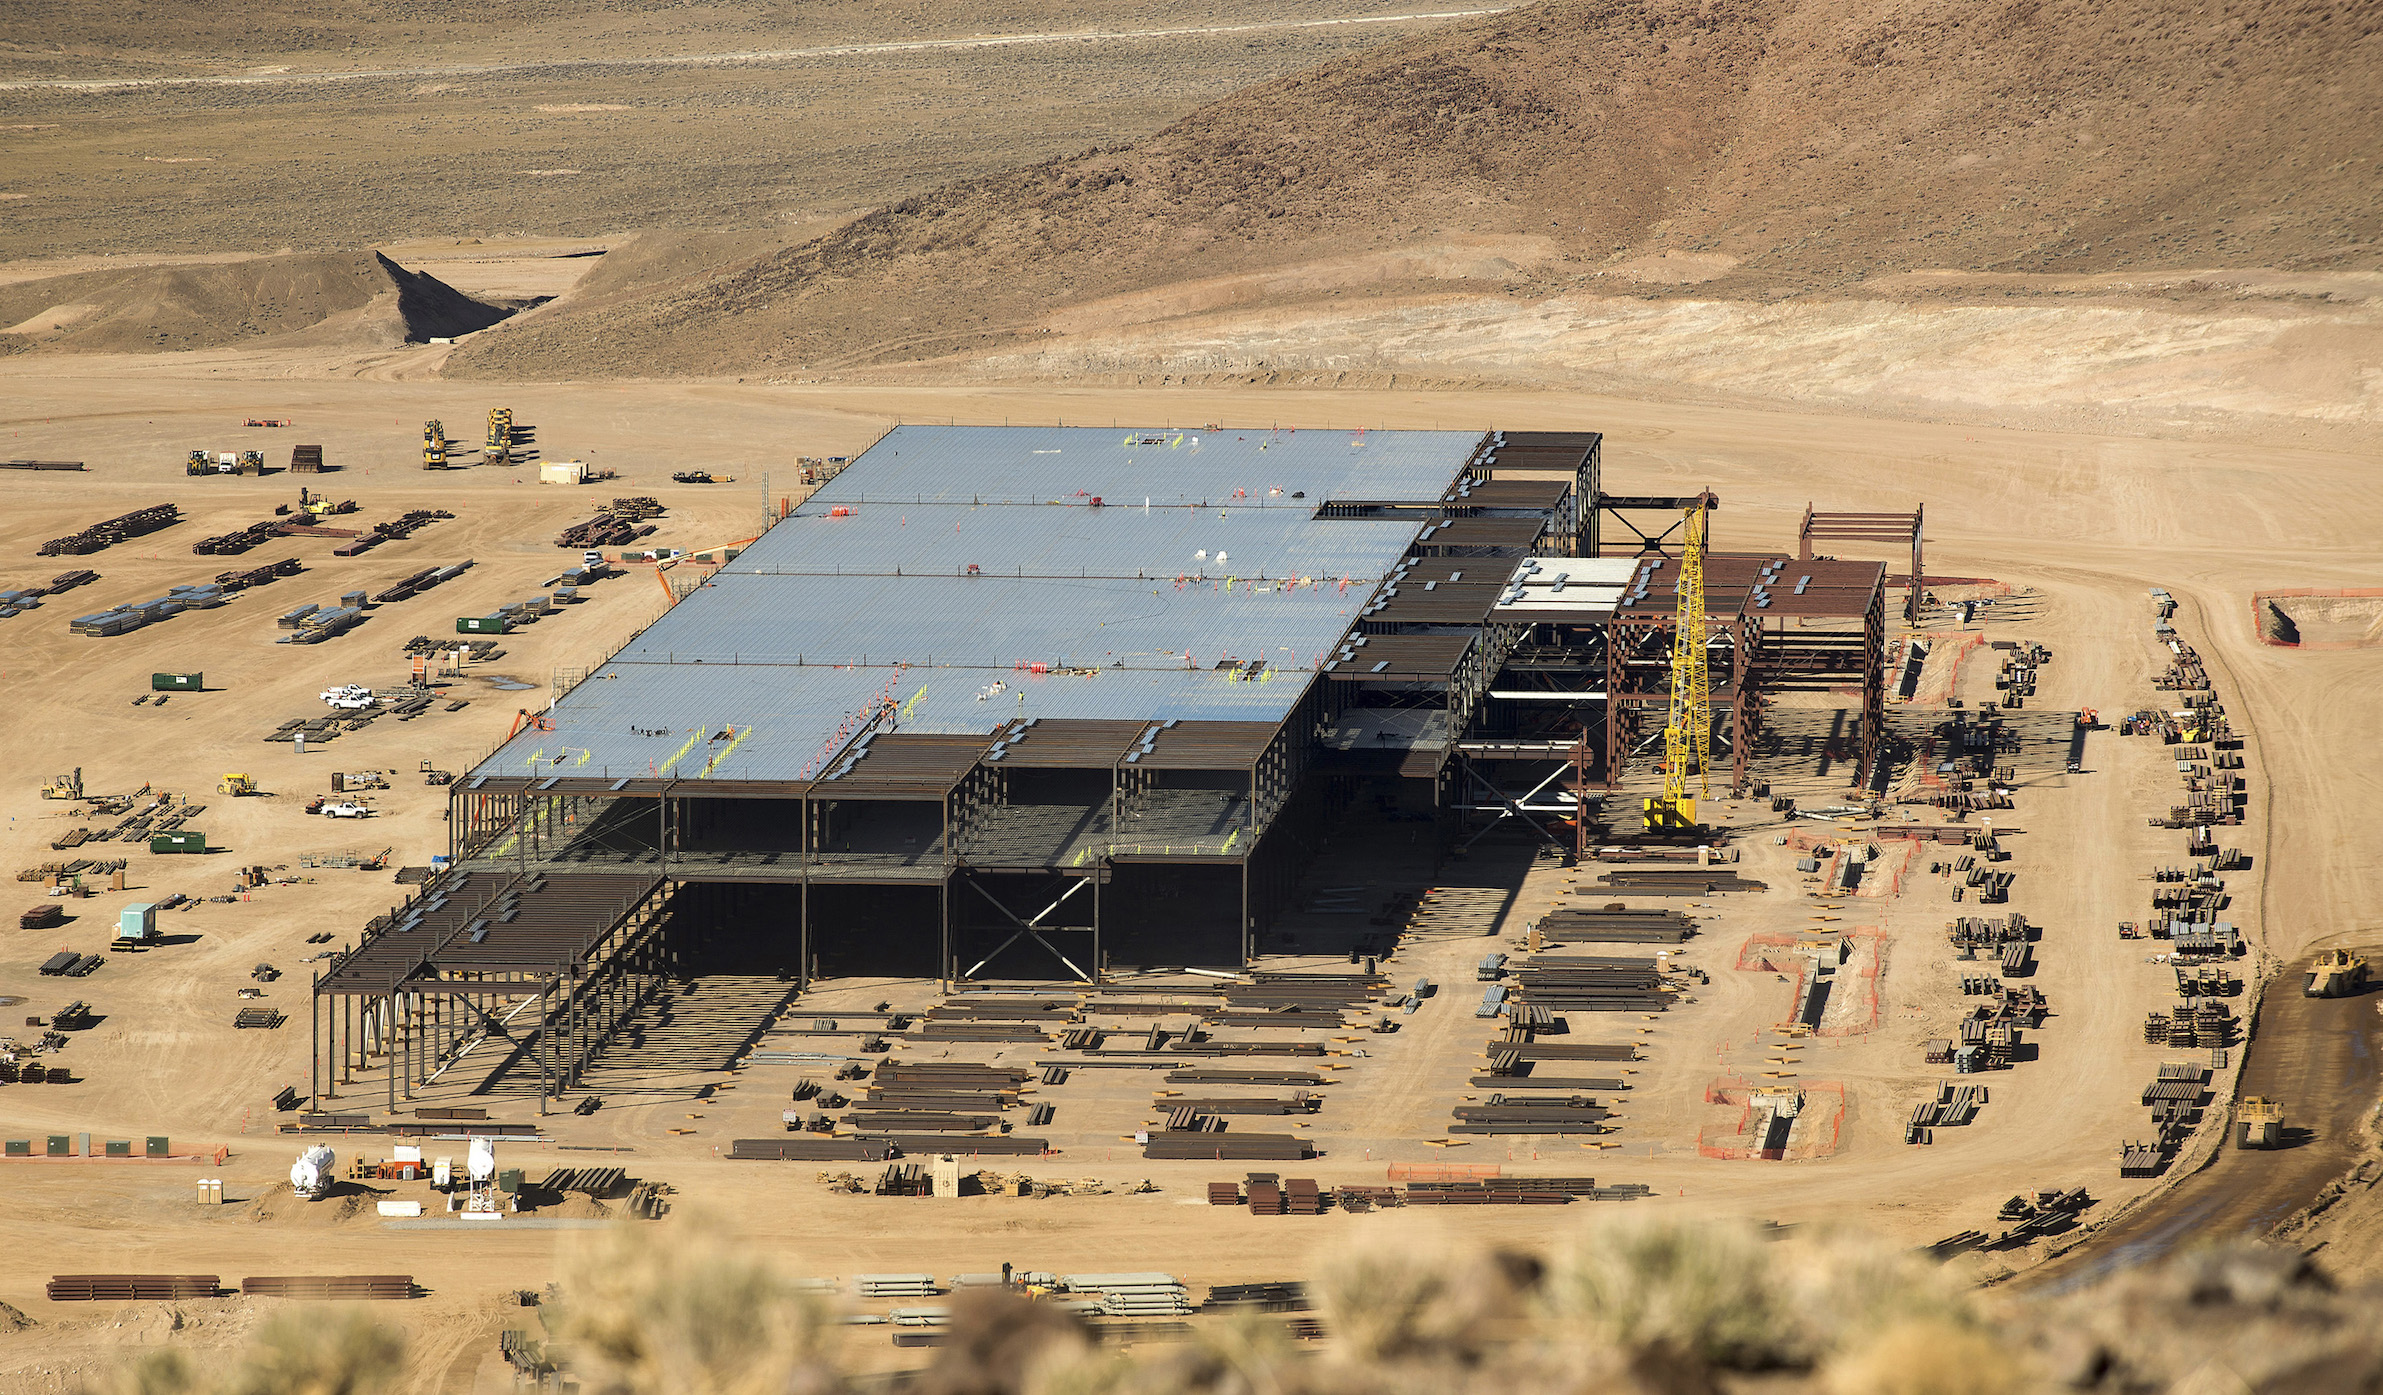 Construction of the Tesla Gigafactory outside Reno, Nevada is shown February 18, 2015. Once known primarily for its casinos and quickie divorces, the Reno area has made impressive strides in its attempt to transform itself into a technology hub in the high-desert of Nevada. In the last few years, it has attracted big Silicon Valley names, including Tesla, Apple and Amazon. But now a new challenge has arisen for Reno: managing its success. Even as the region celebrates its economic wins, it is struggling to cope with the additional demands that the new businesses -- and the new residents they draw -- will place on Reno?s infrastructure, schools, and city services. To match Insight USA-RENO/TECH  Picture taken February 18, 2015.    REUTERS/James Glover II  (UNITED STATES - Tags: TRANSPORT BUSINESS SOCIETY) - RTR4R9LW